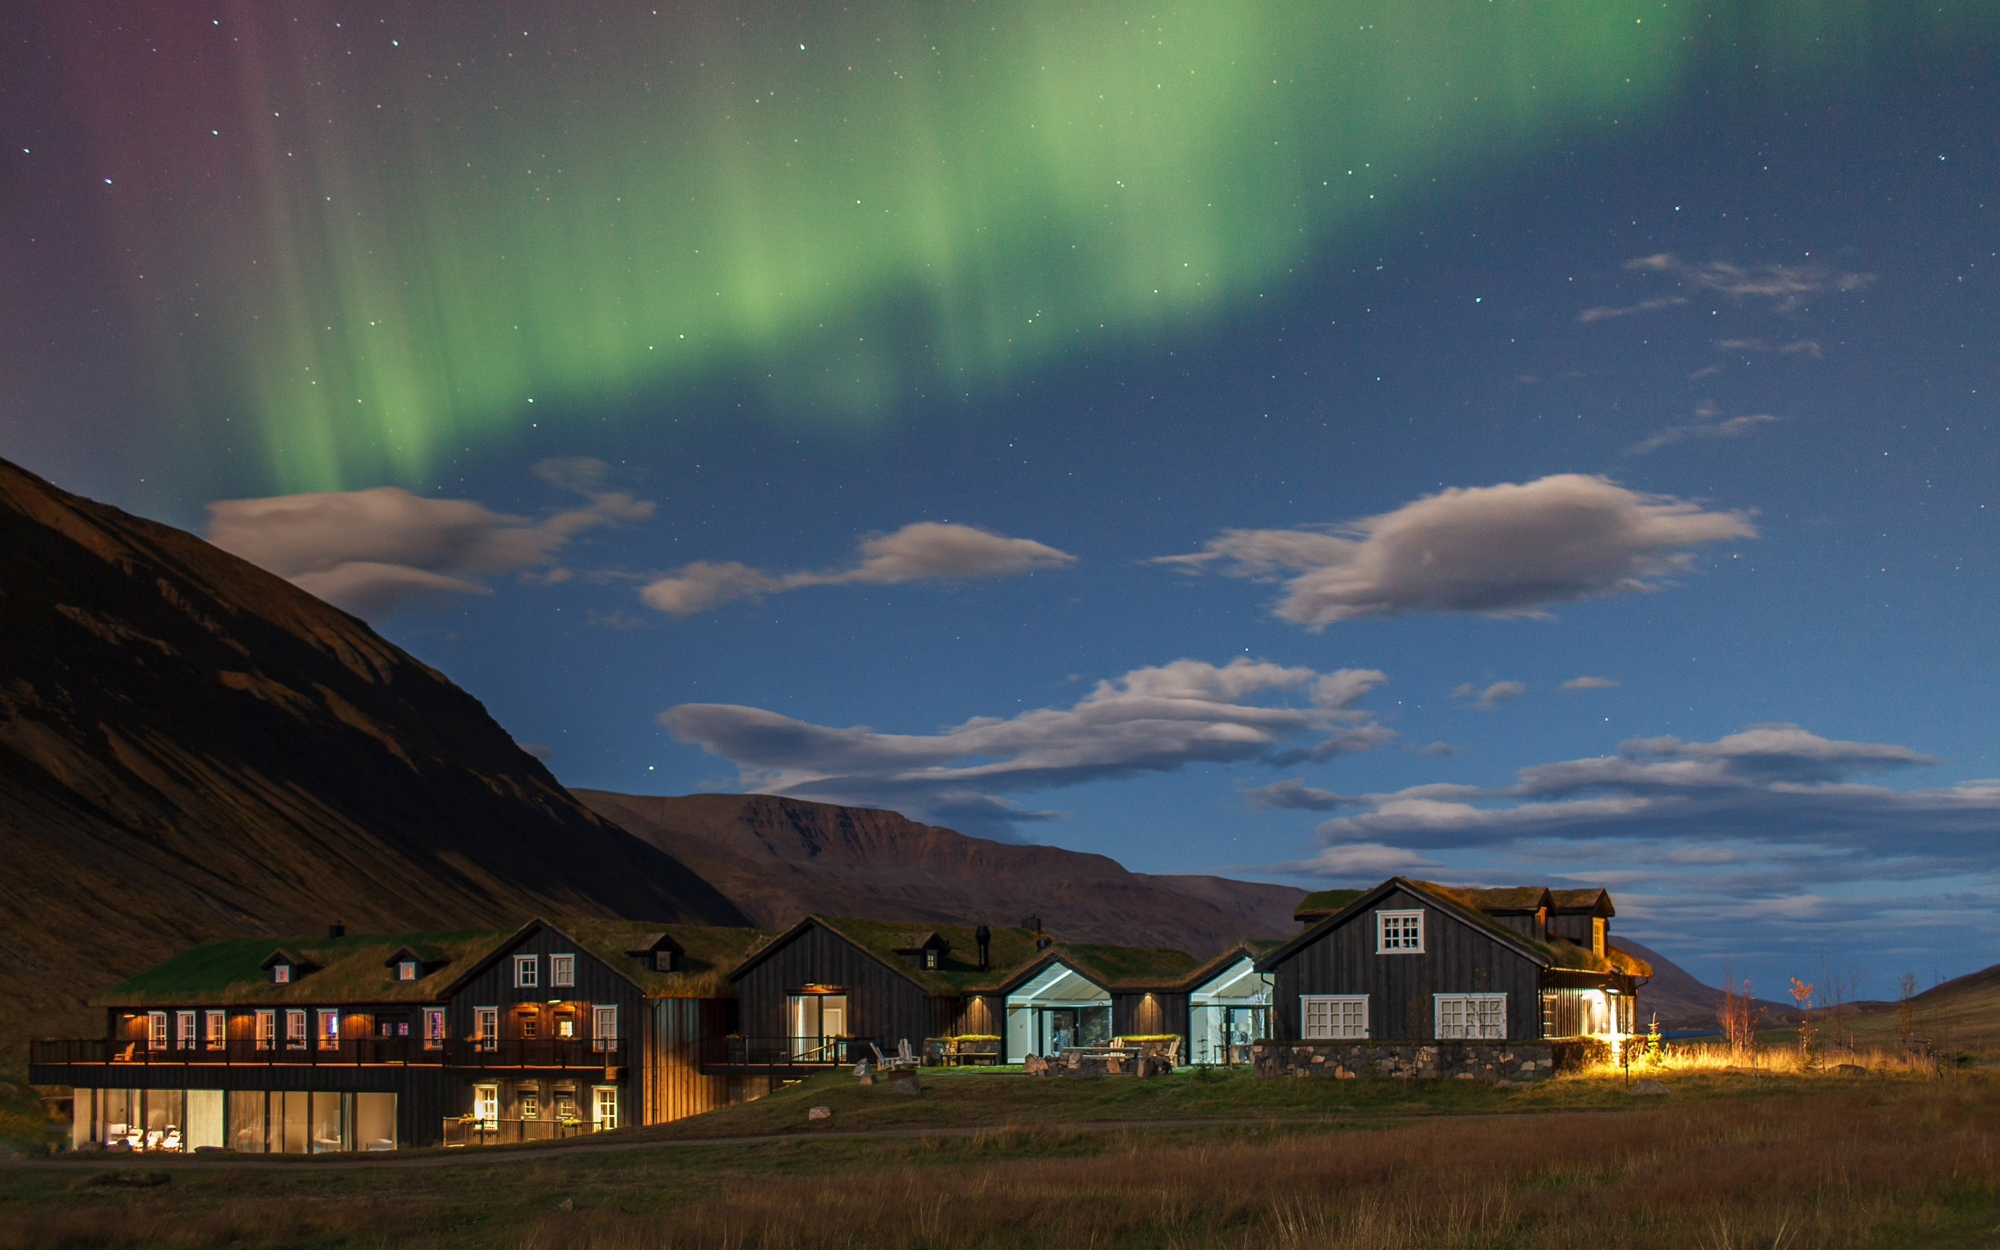 deplar-farm-iceland-northern-lights.jpg